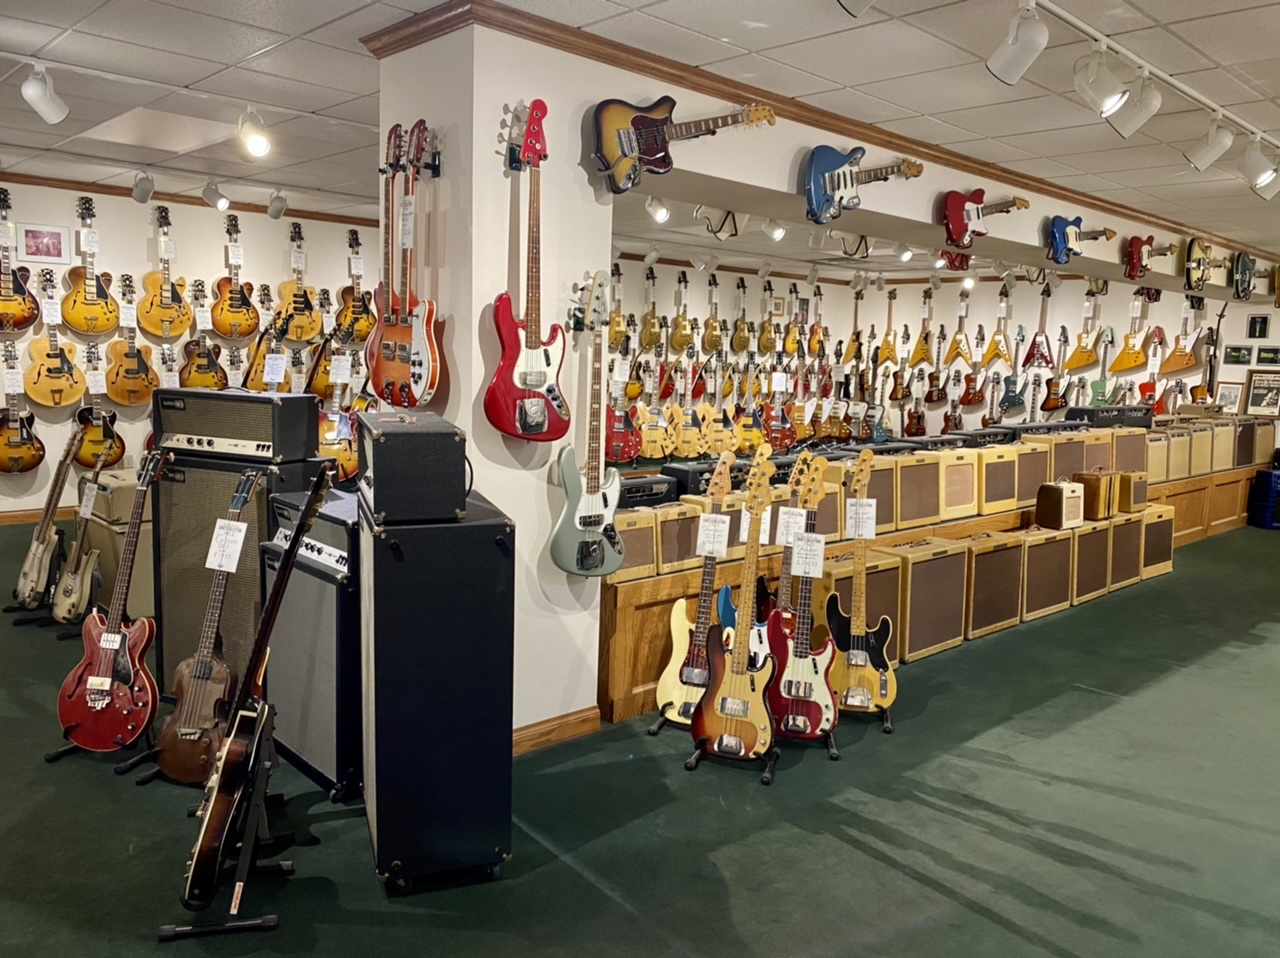 Visited the Mecca—Dave's Guitar Shop-1f192852-35be-4acc-942f-4a11c87467a9-jpeg